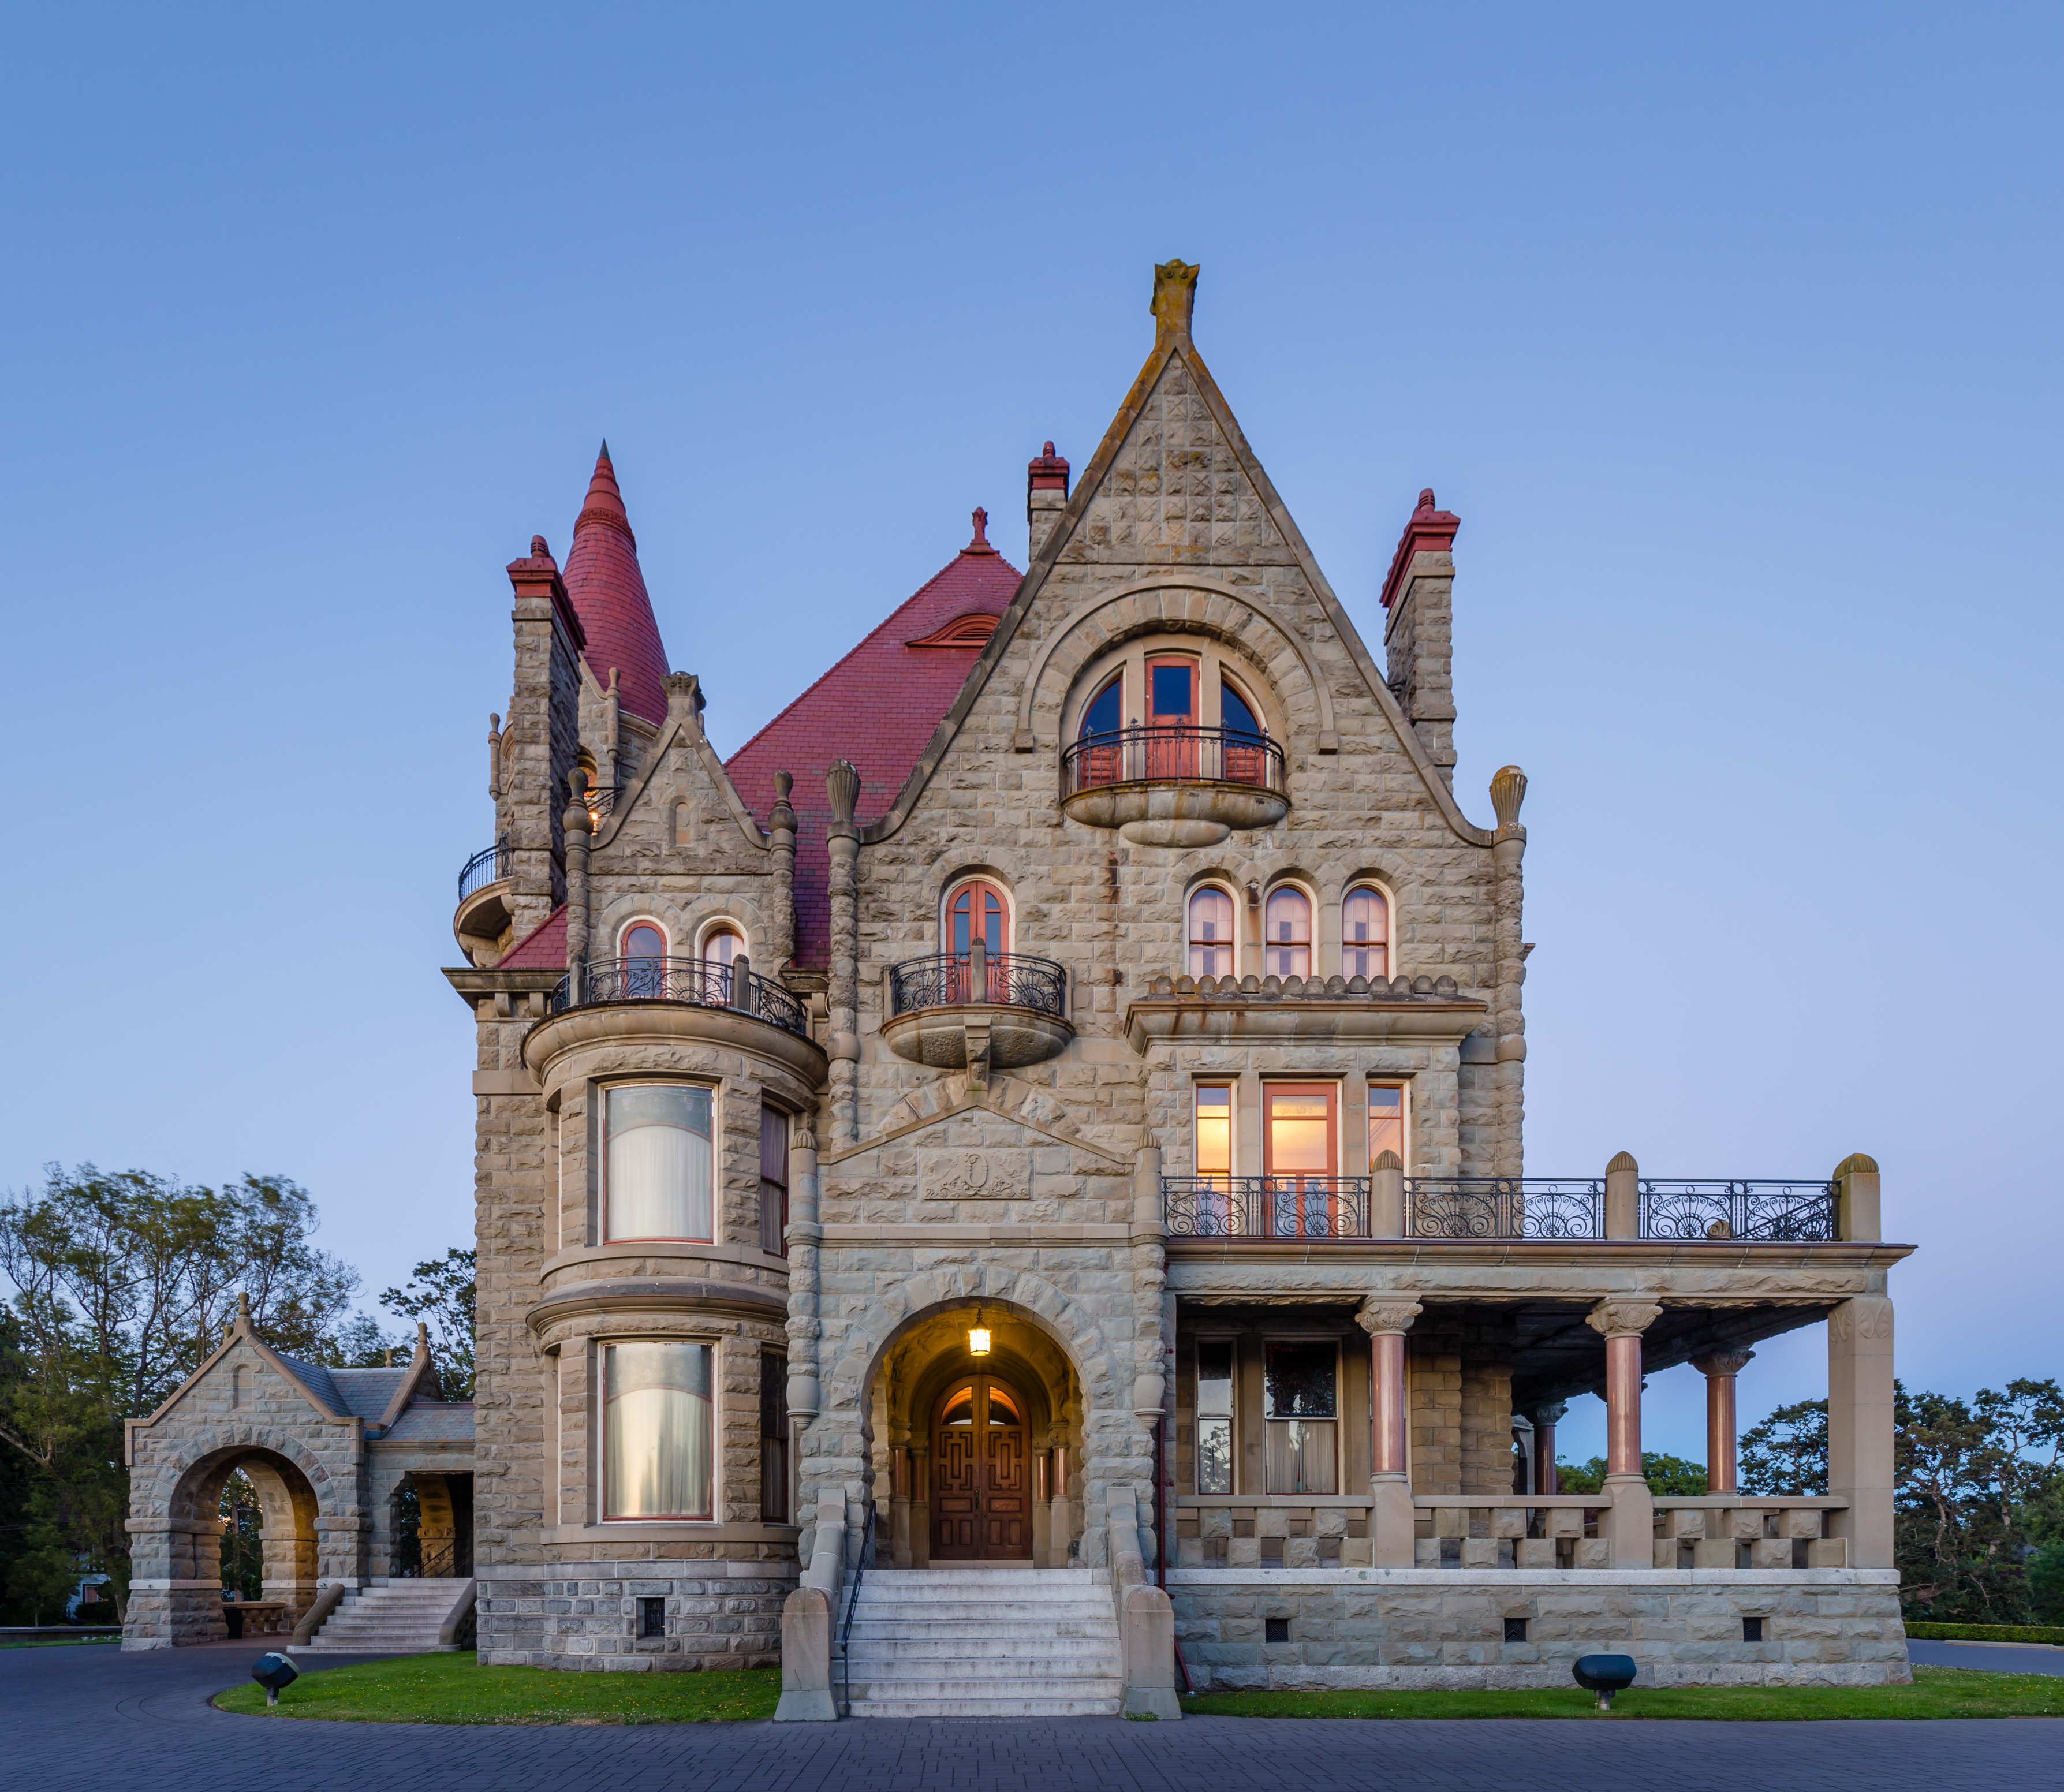 file craigdarroch castle just after sunset view from the. Black Bedroom Furniture Sets. Home Design Ideas